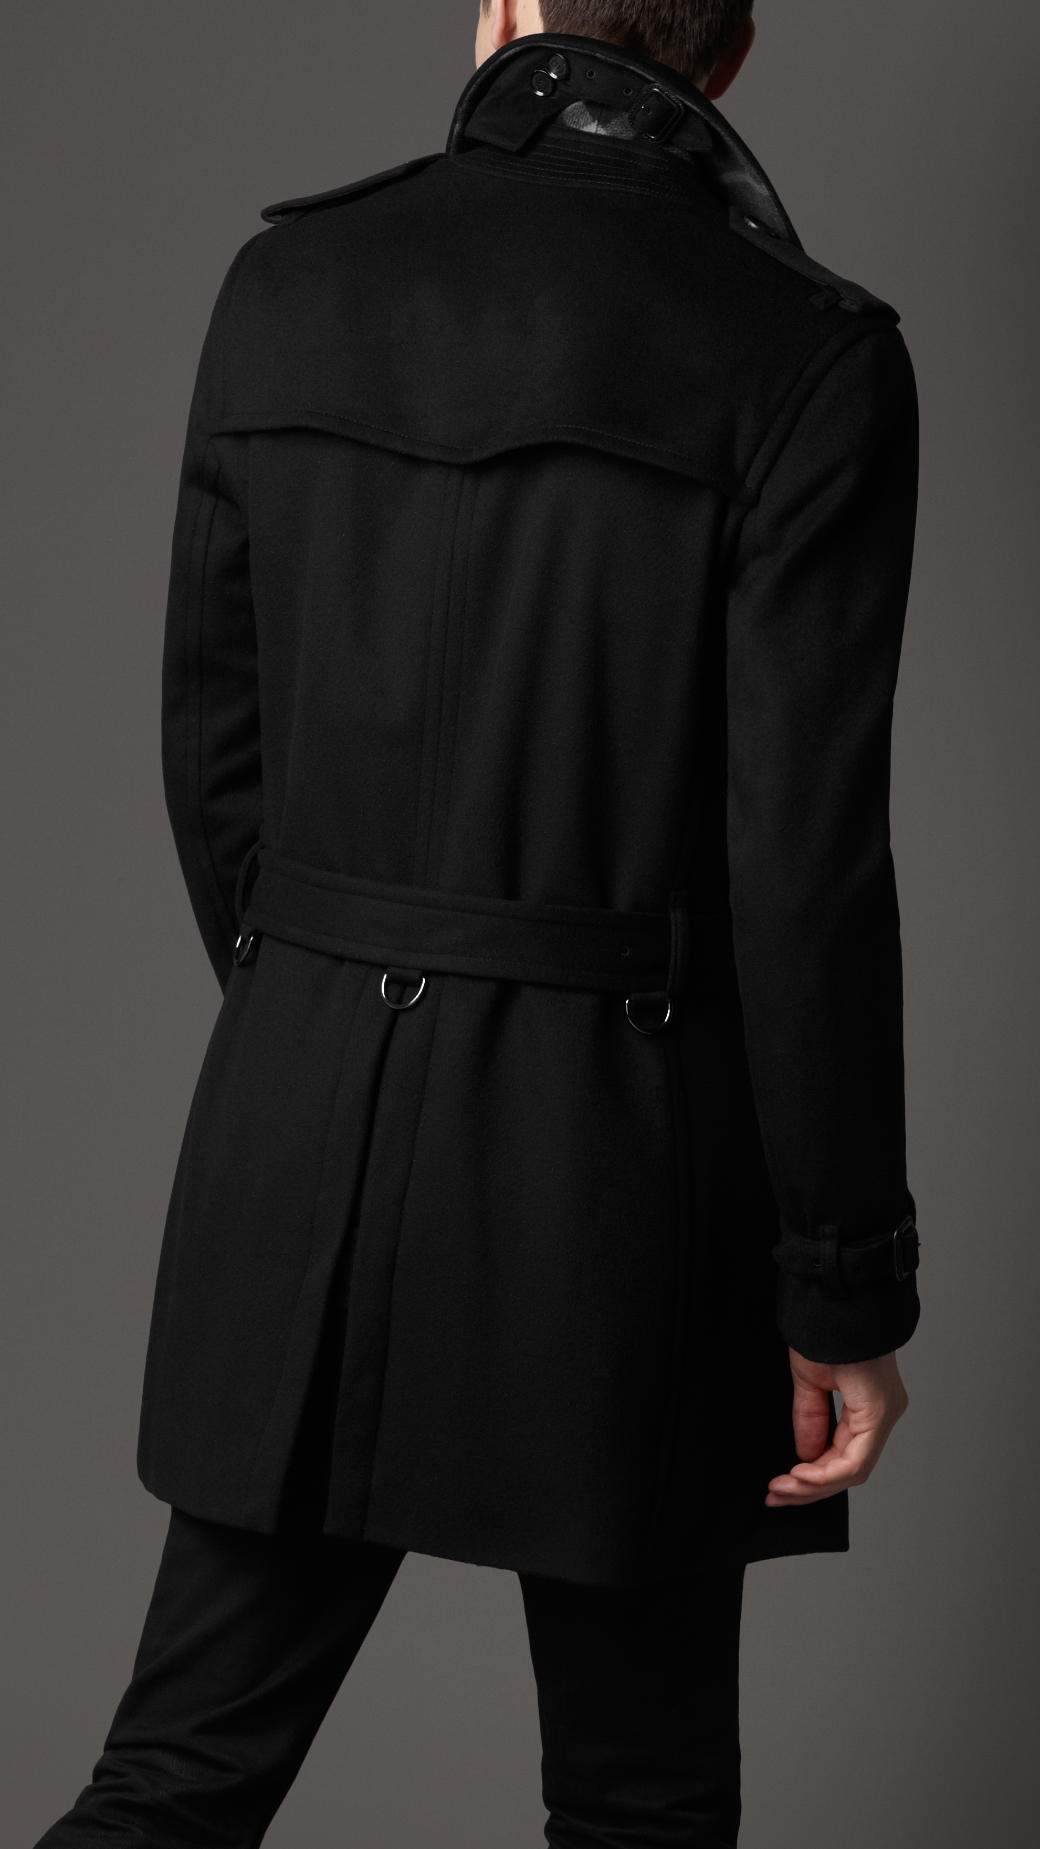 Burberry Wool Trench Coat In Black For Men Lyst